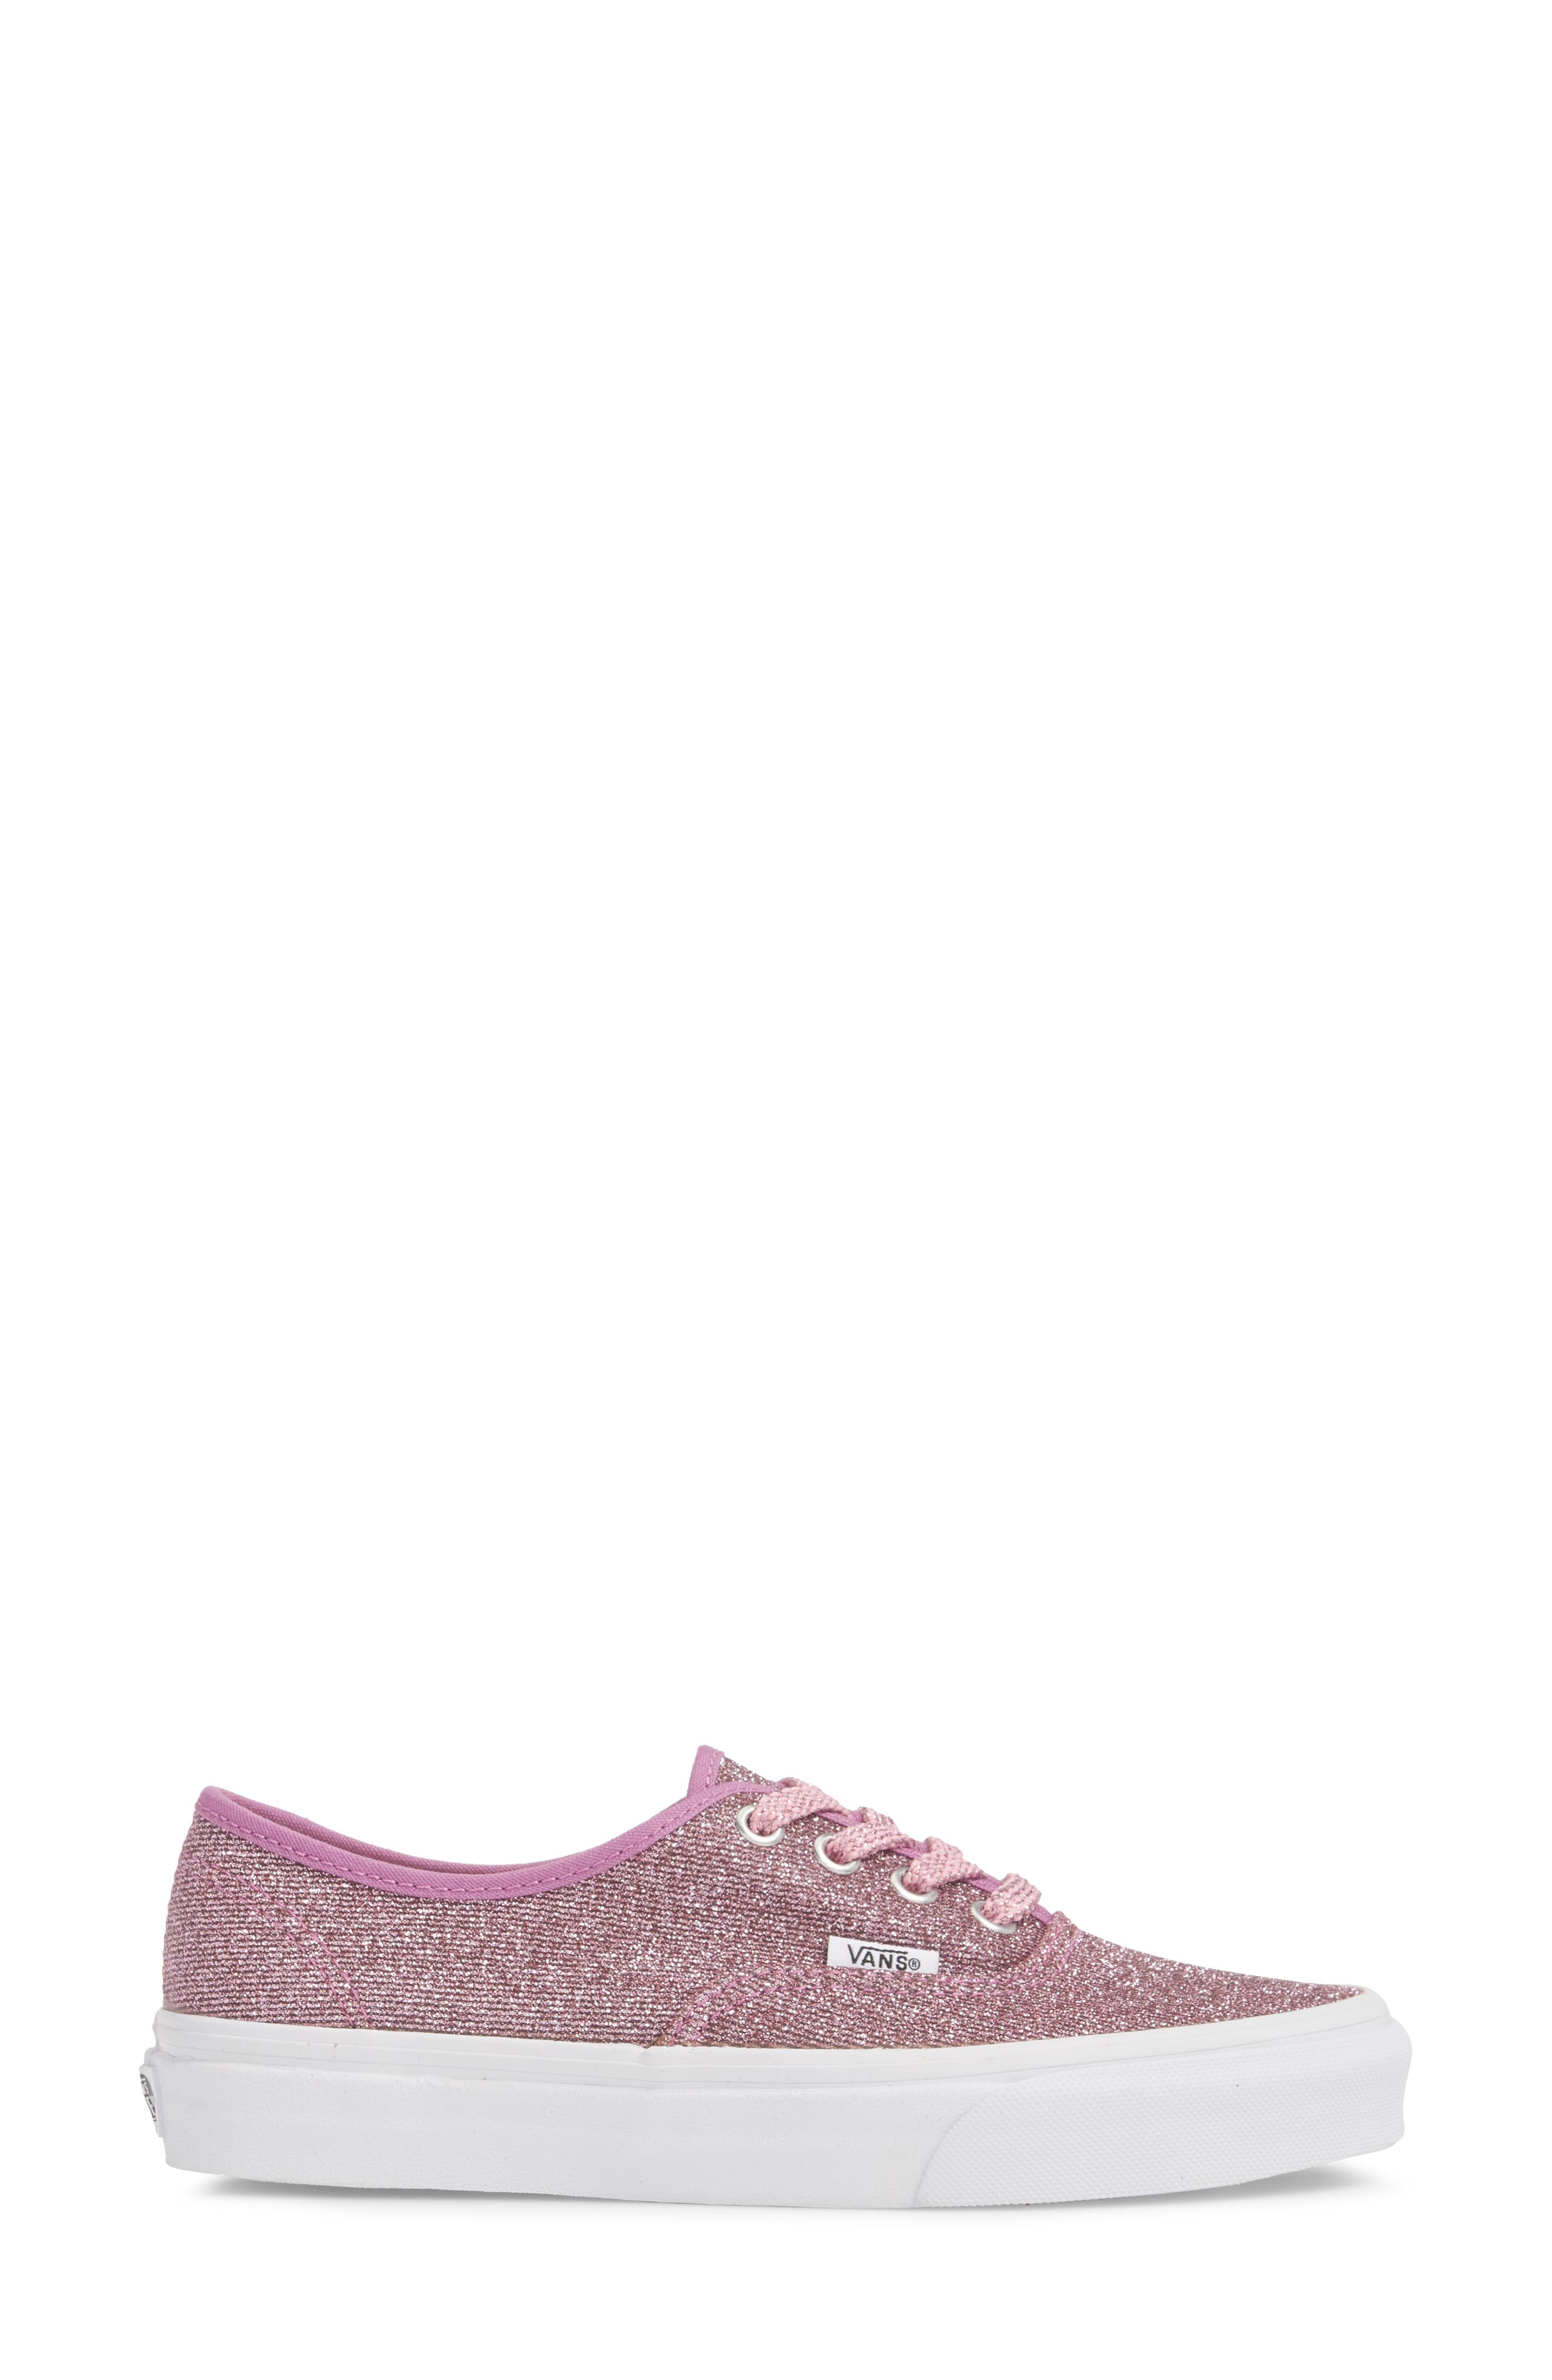 UA Authentic Lurex Sneaker,                             Alternate thumbnail 4, color,                             Pink/ True White Glitter